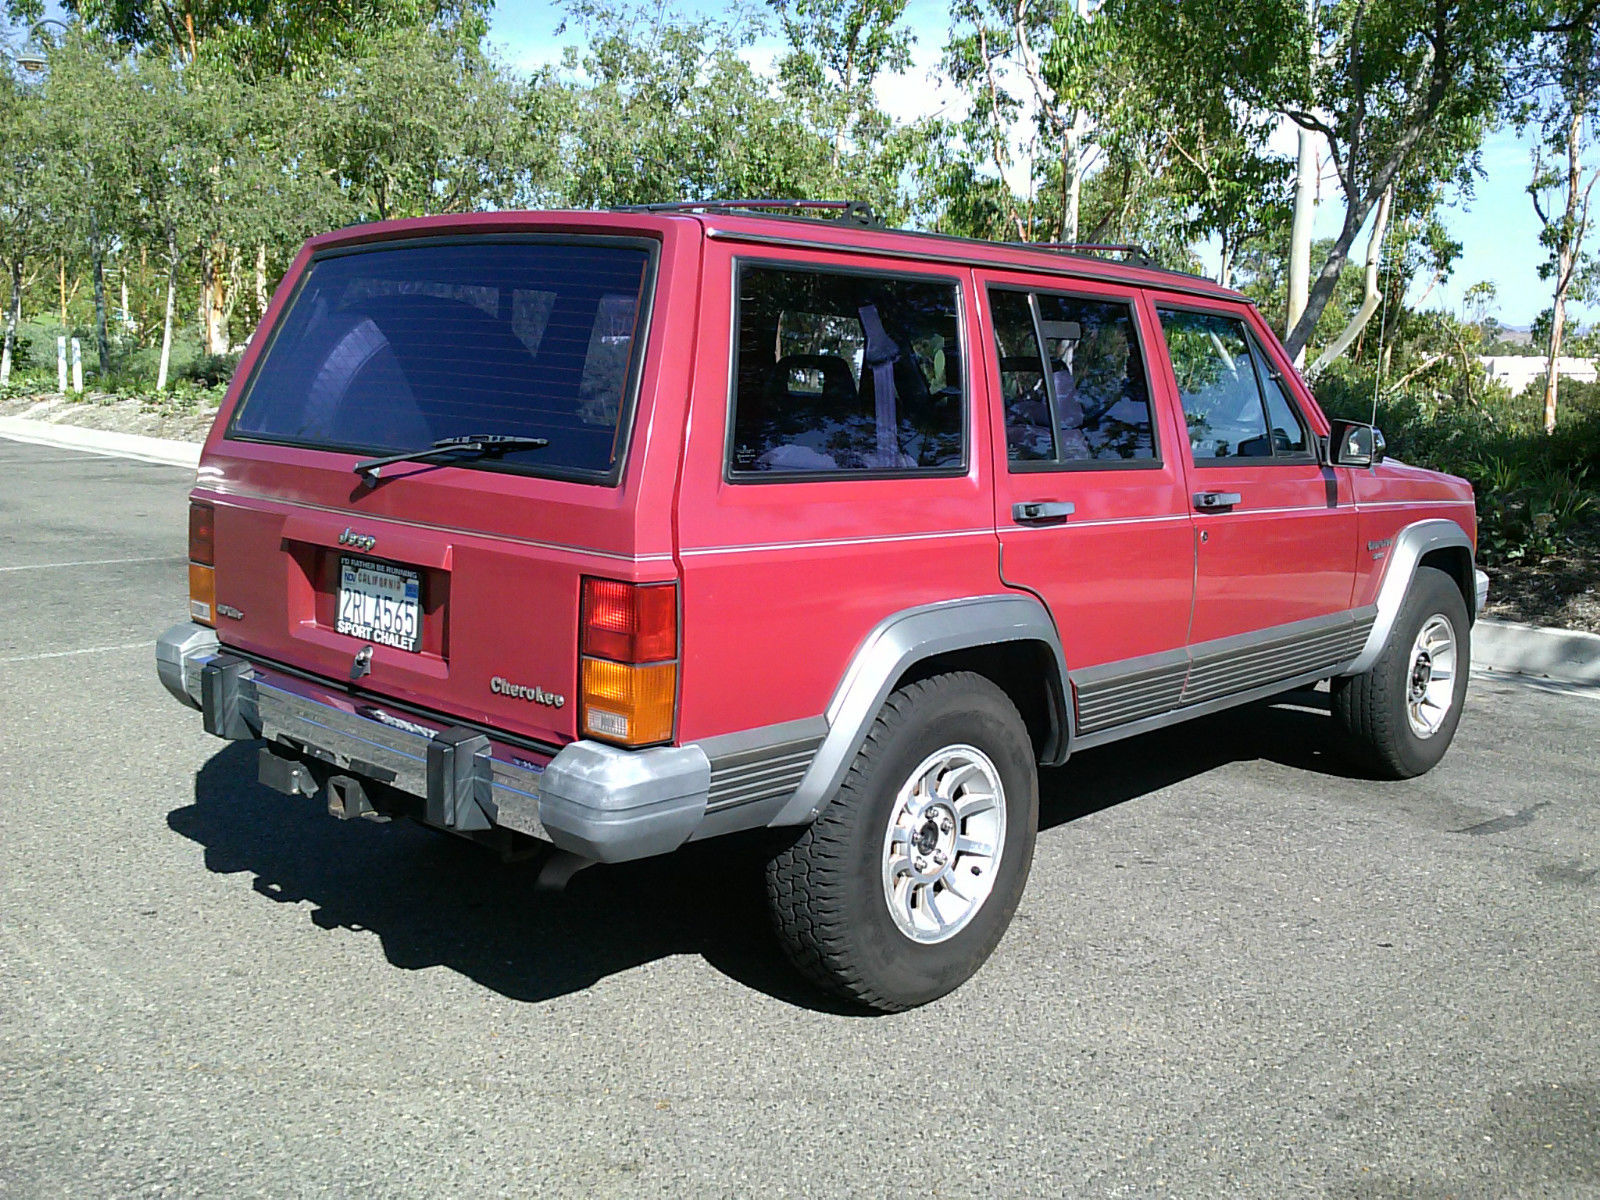 1990 jeep cherokee laredo xj classic rust free california car one family owned classic jeep. Black Bedroom Furniture Sets. Home Design Ideas